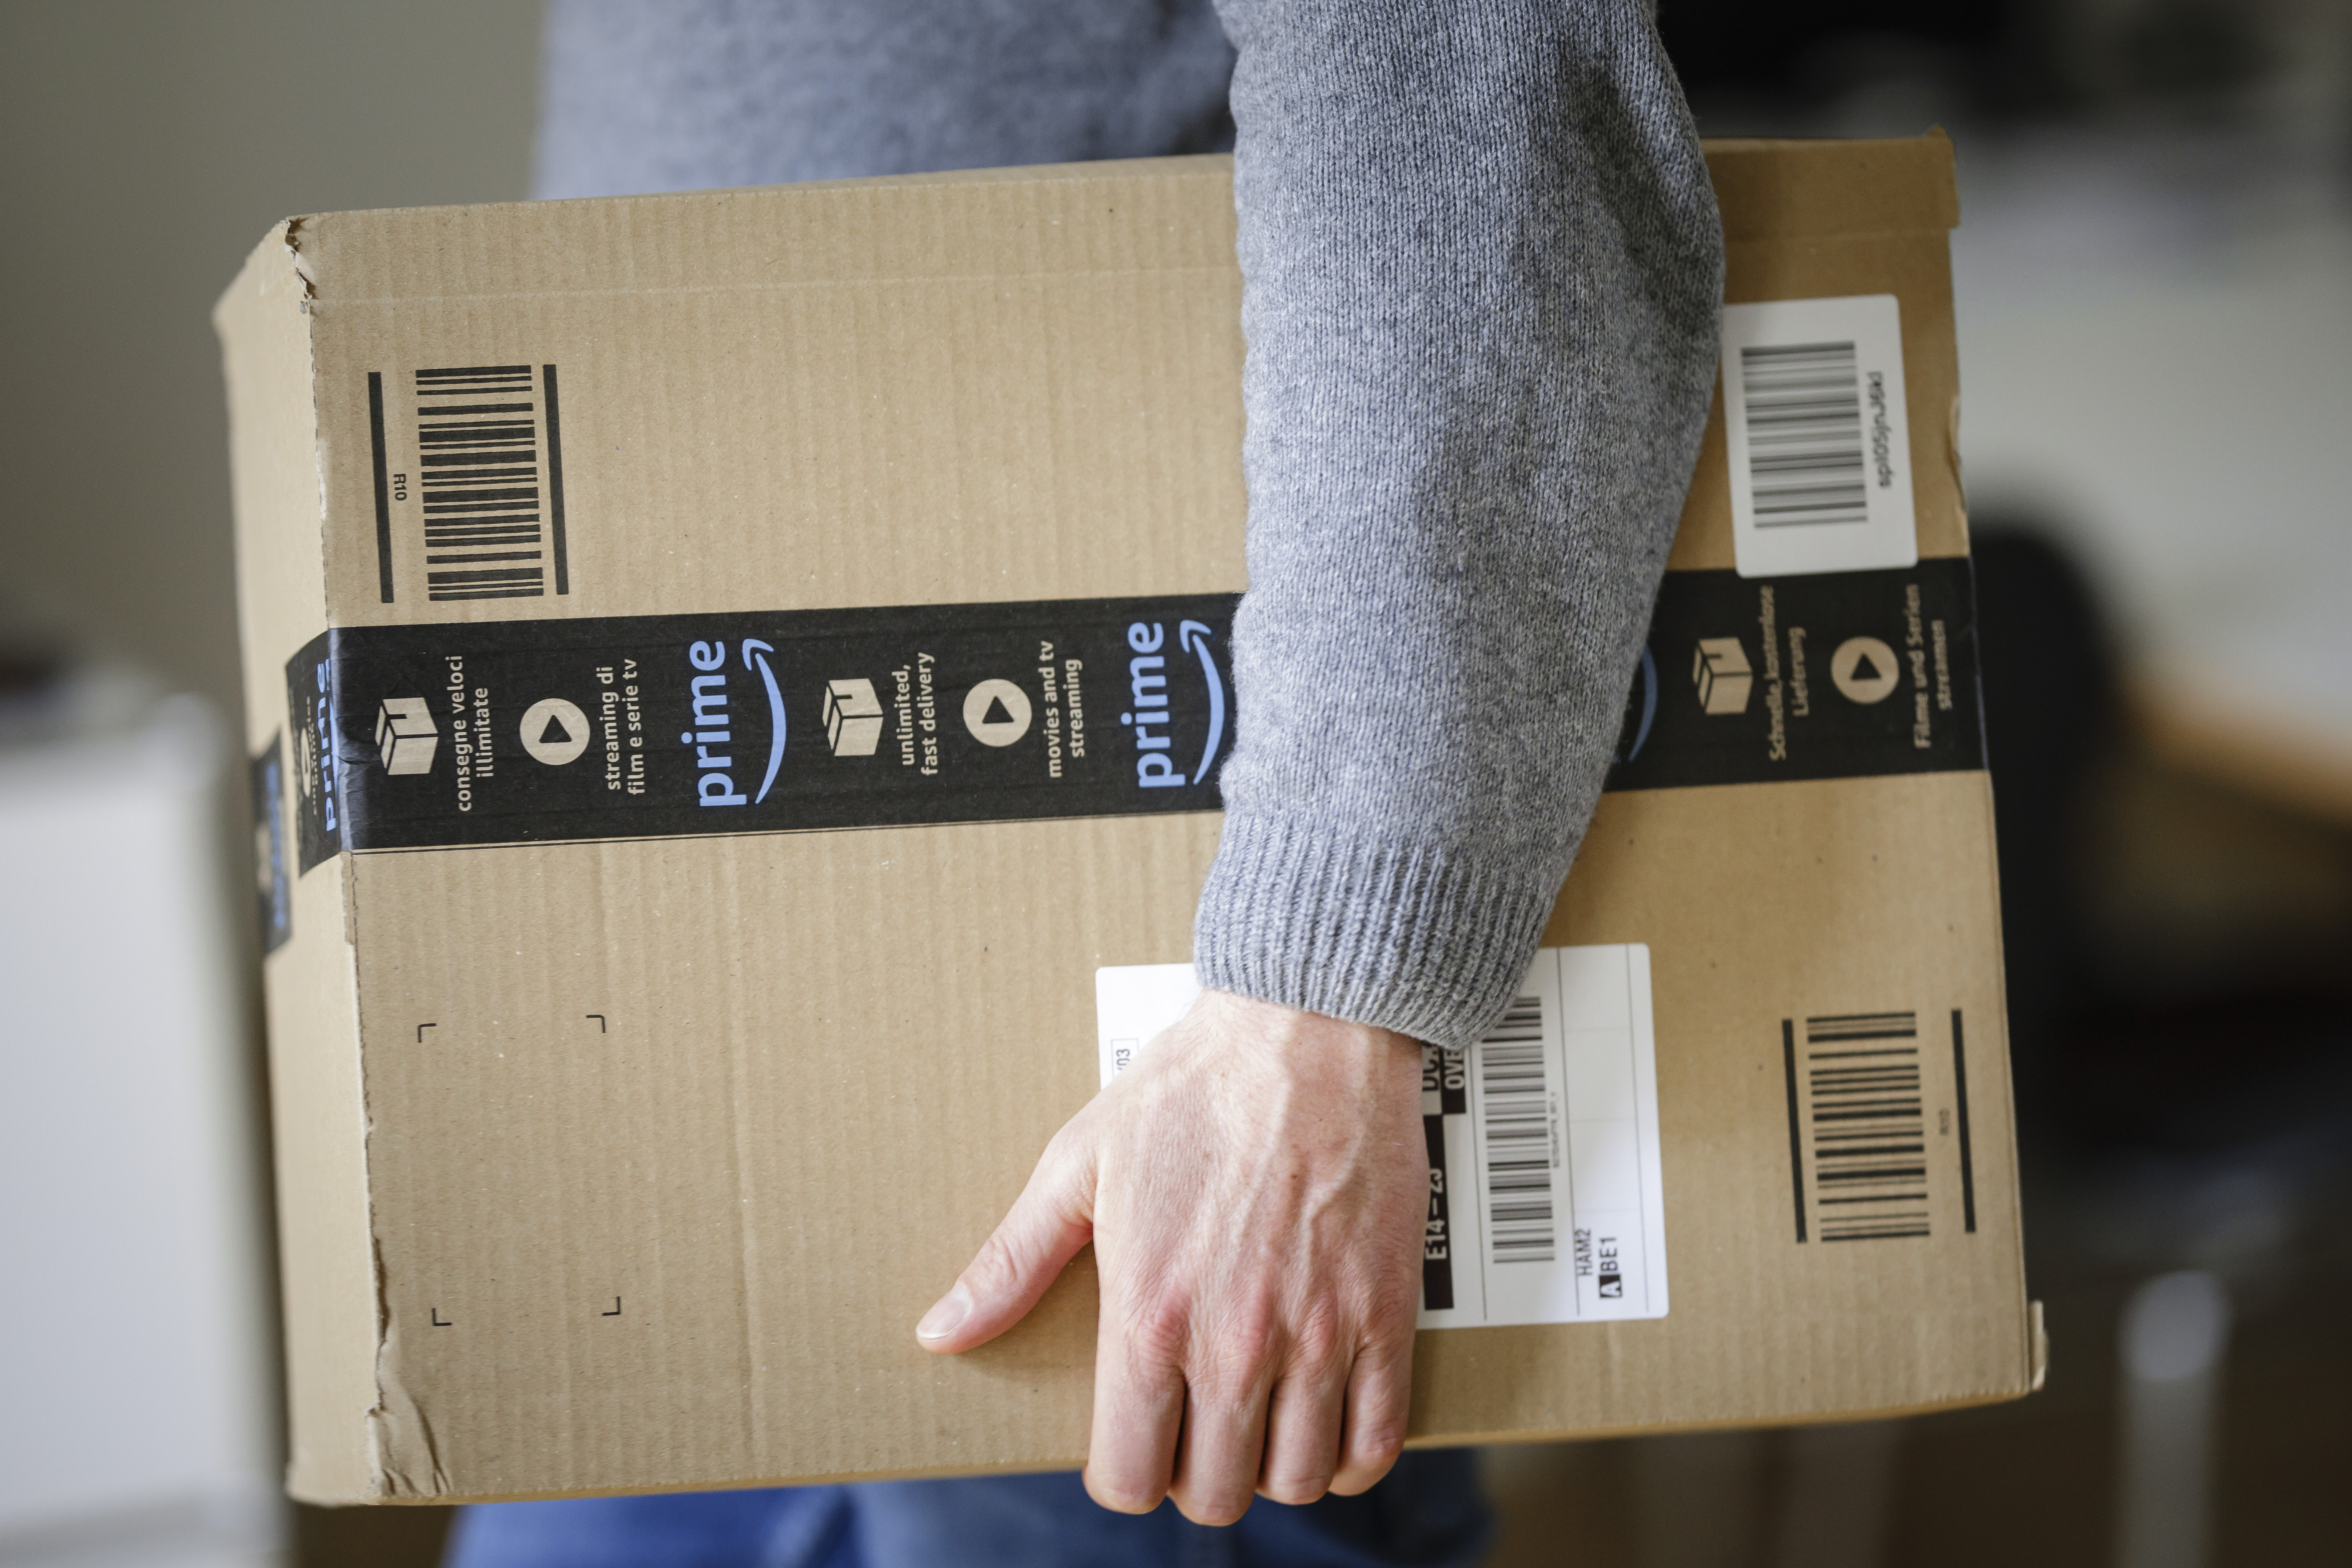 Amazon may soon face an antitrust probe. Here are 3 questions the FTC is asking about it.